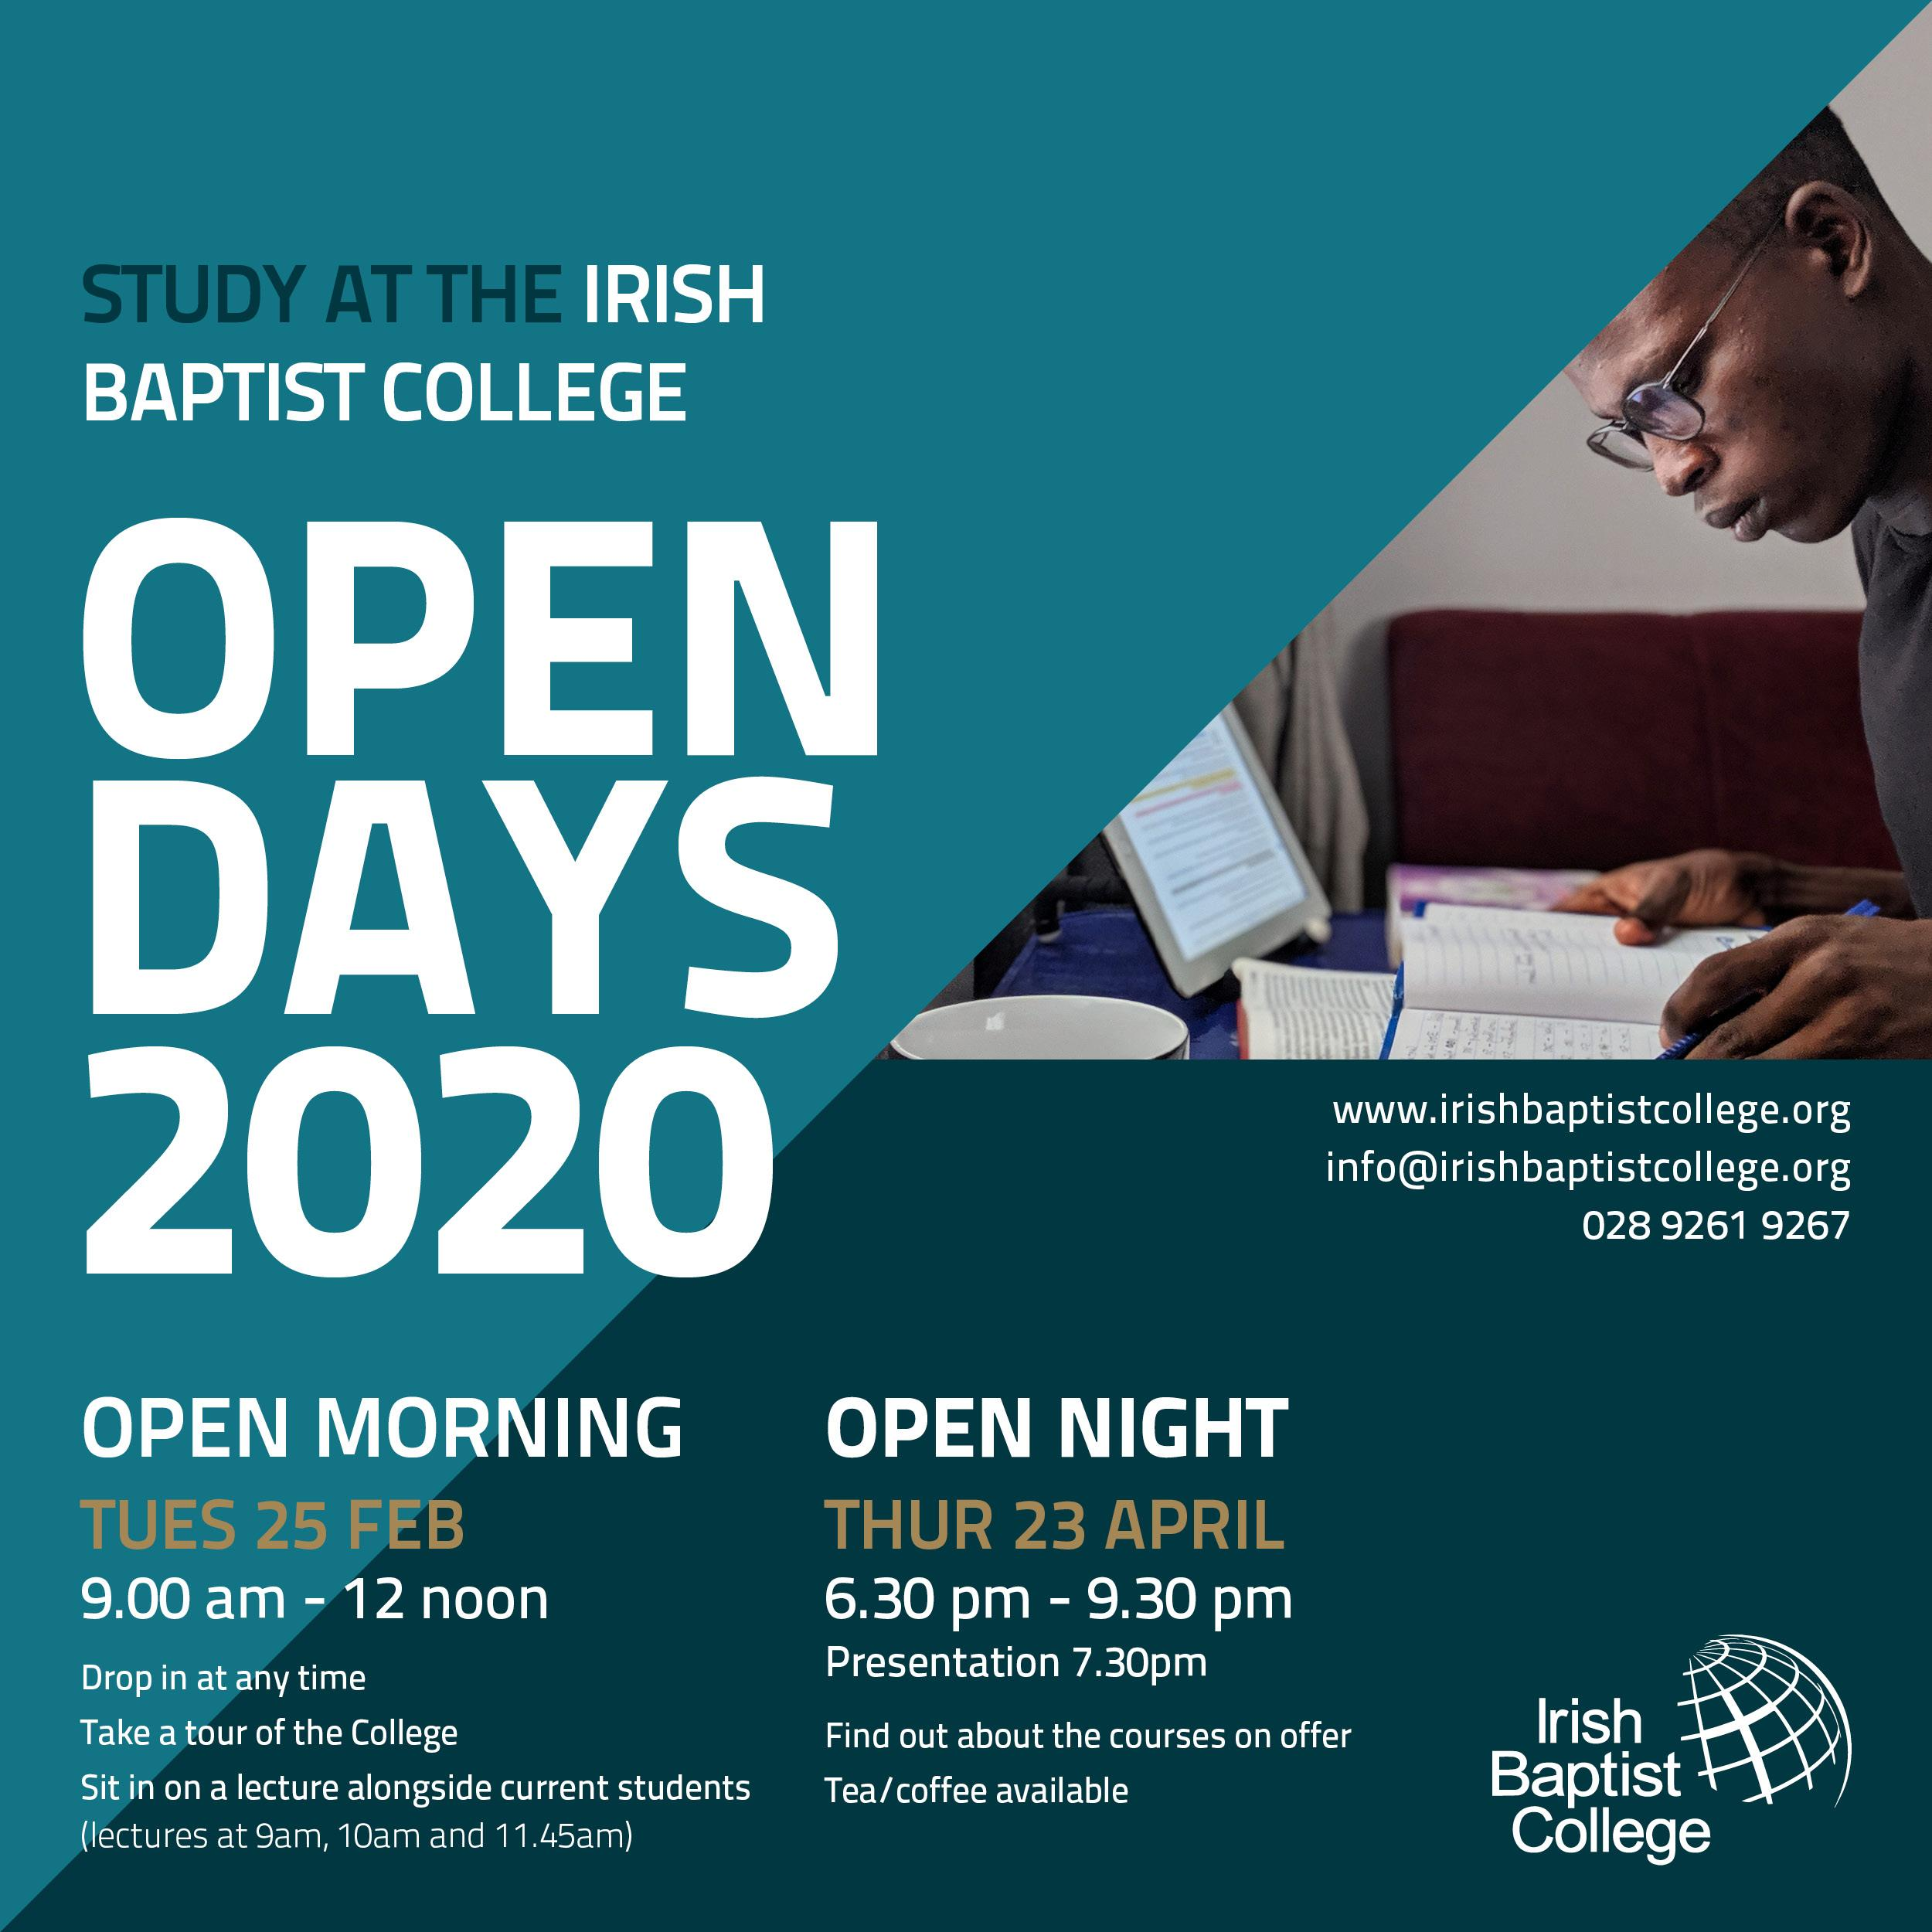 Image: open-morning-2020